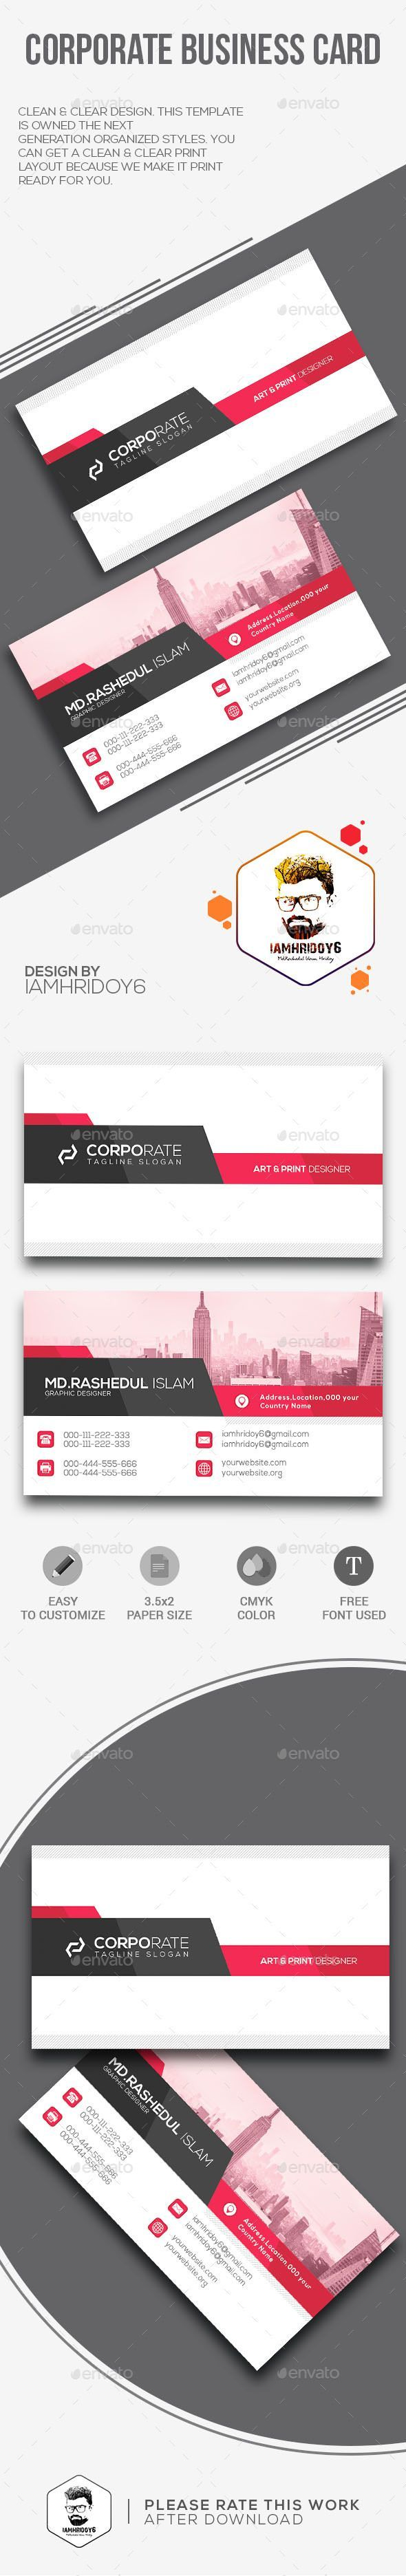 8 best Creative business card images on Pinterest | Creative ...